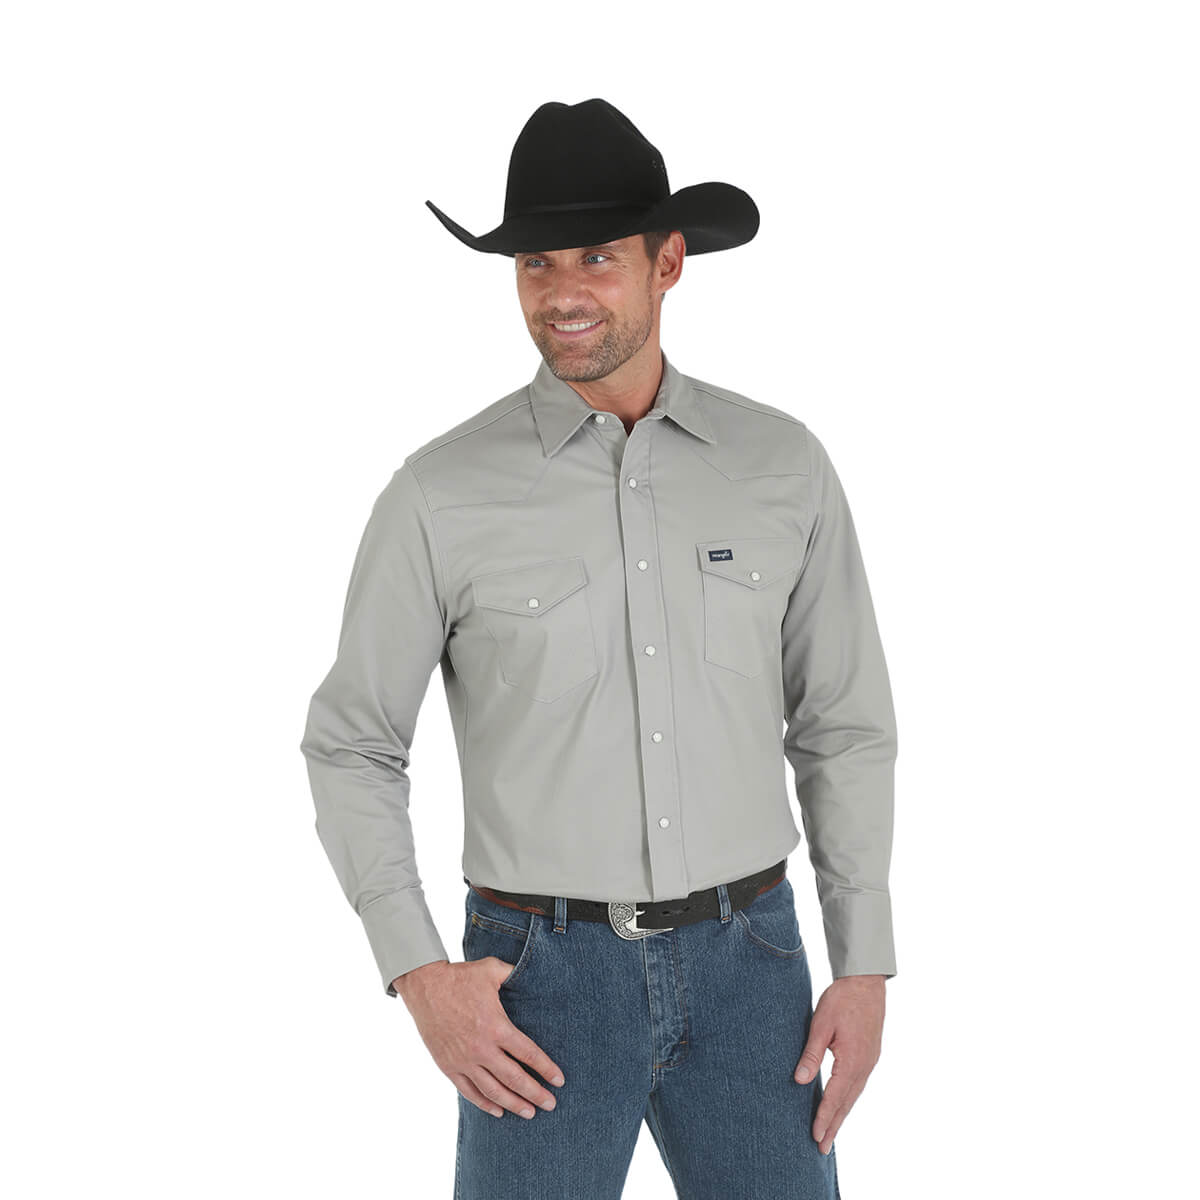 Men's Wrangler® Premium Performance Advanced Comfort Cowboy-Cut Long-Sleeved Shirt - Cement